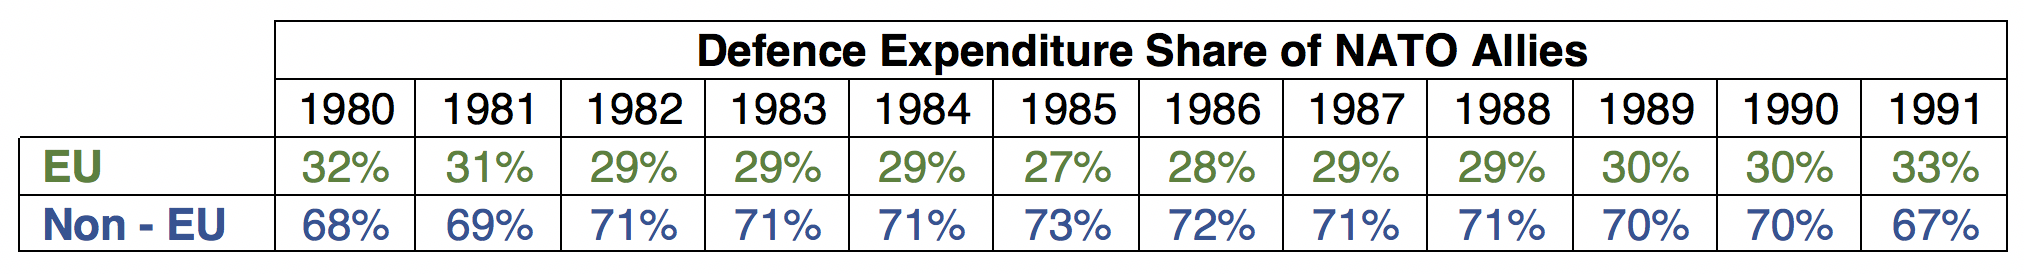 Total Defence Expenditure Share of NATO Allies (1980 - 1991), Source (SIPRI Military Expenditure Database)